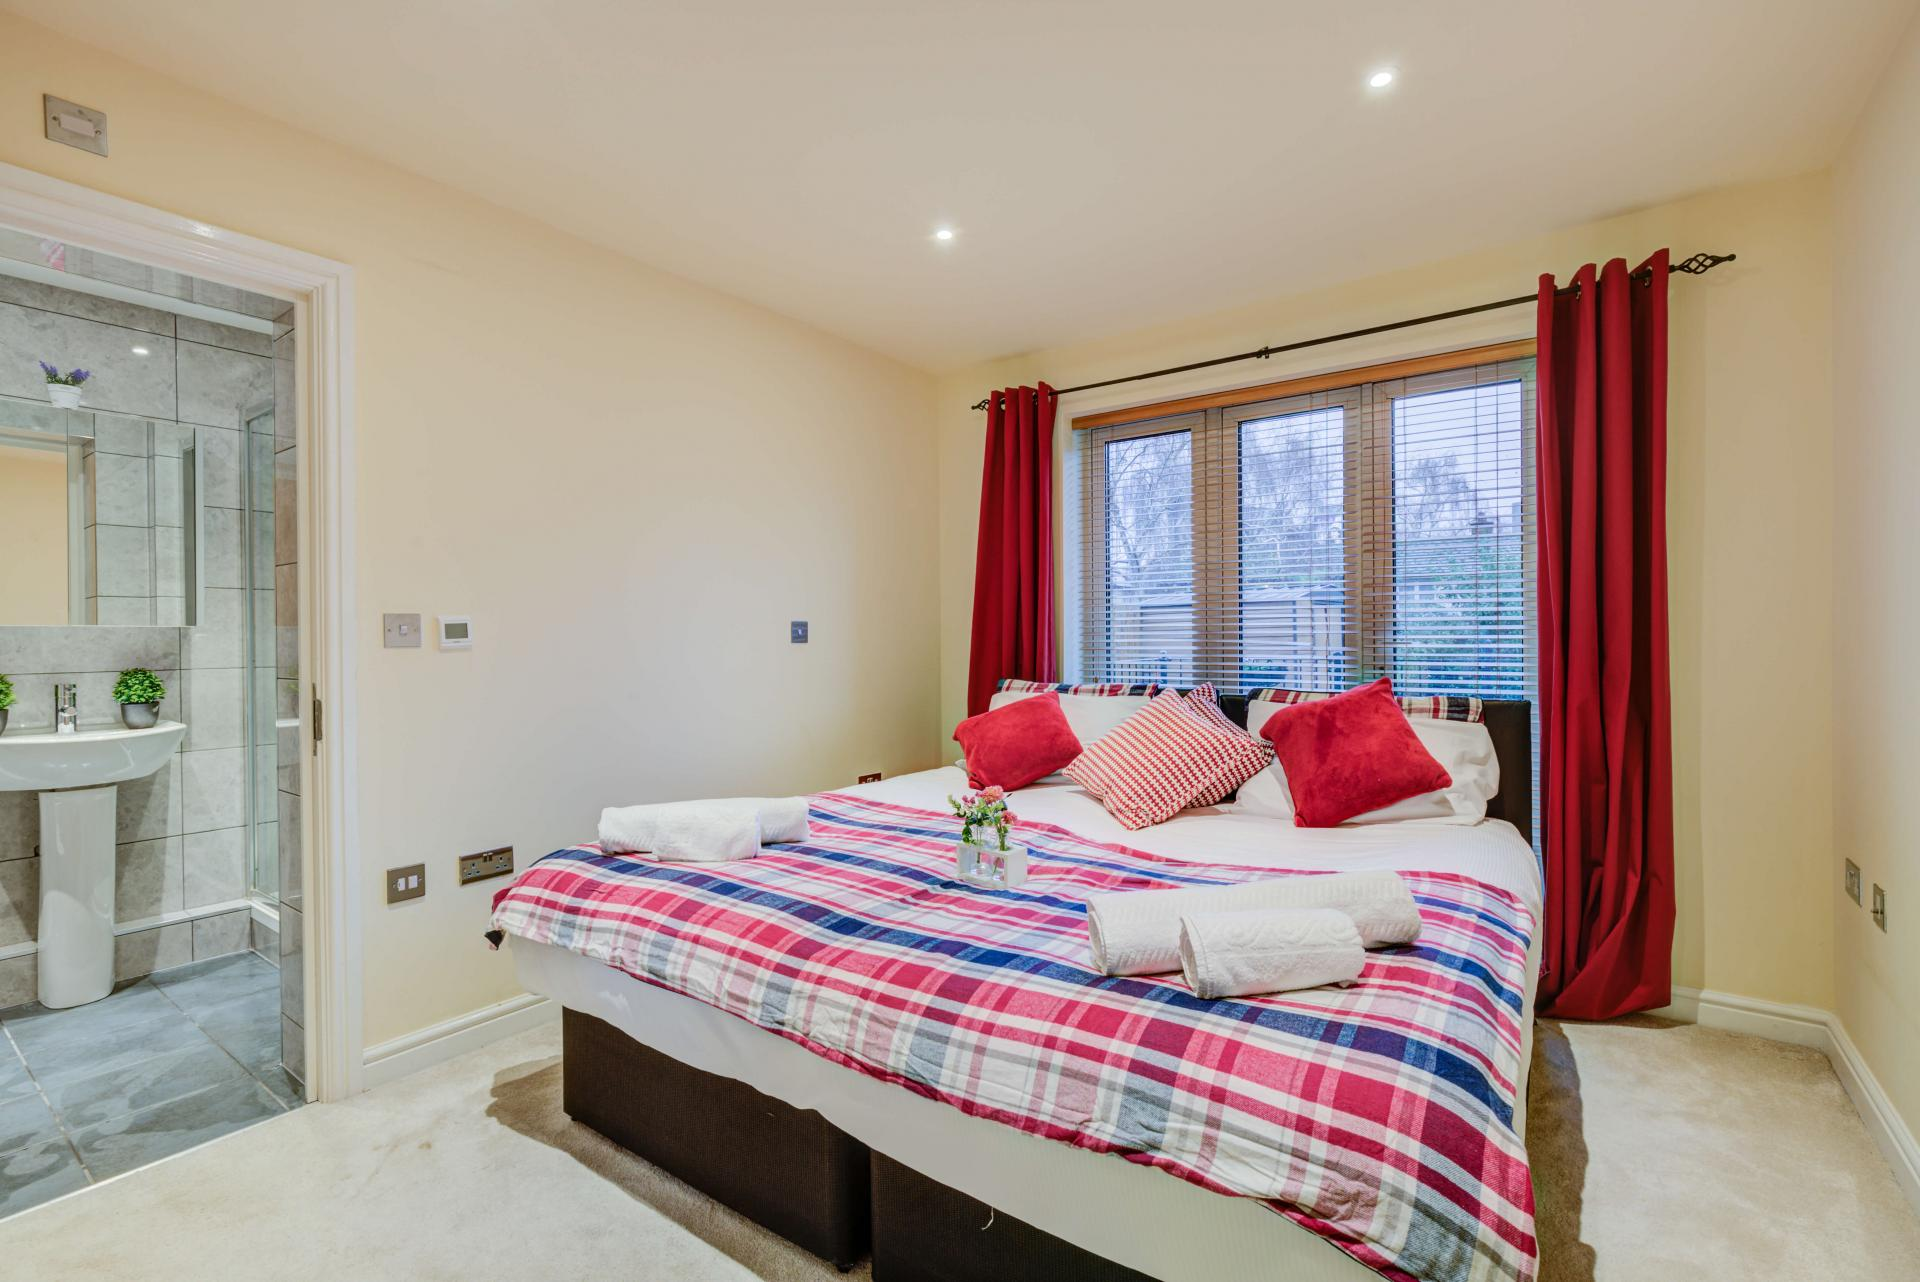 Bedroom at Mill Cross Apartment - Citybase Apartments